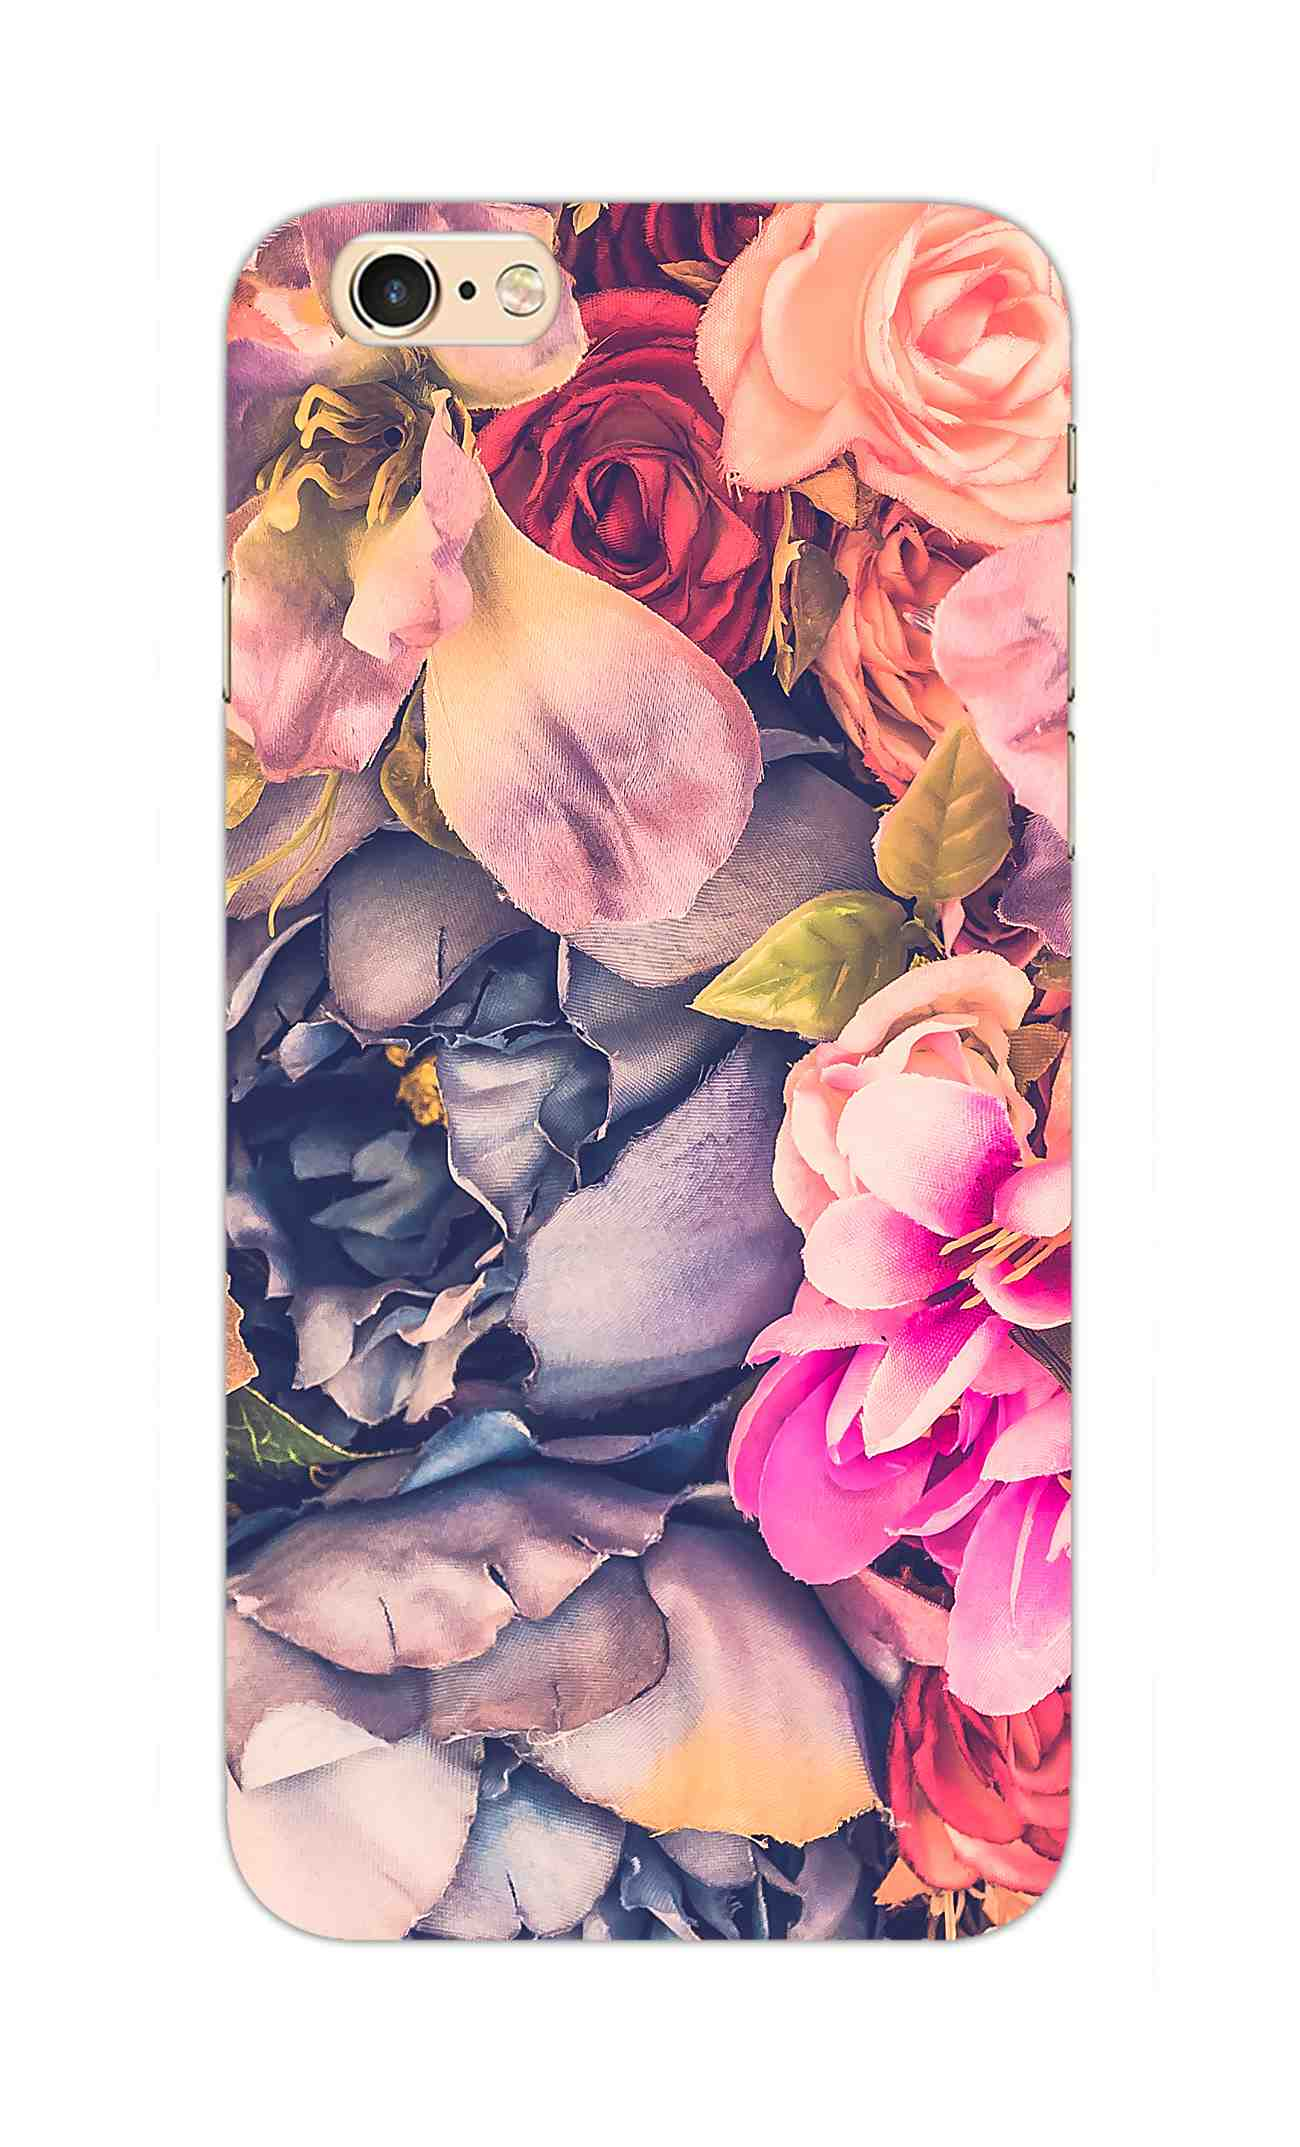 Flowers Blomming Roses Everywhere  iPhone 6S Plus Mobile Cover Case